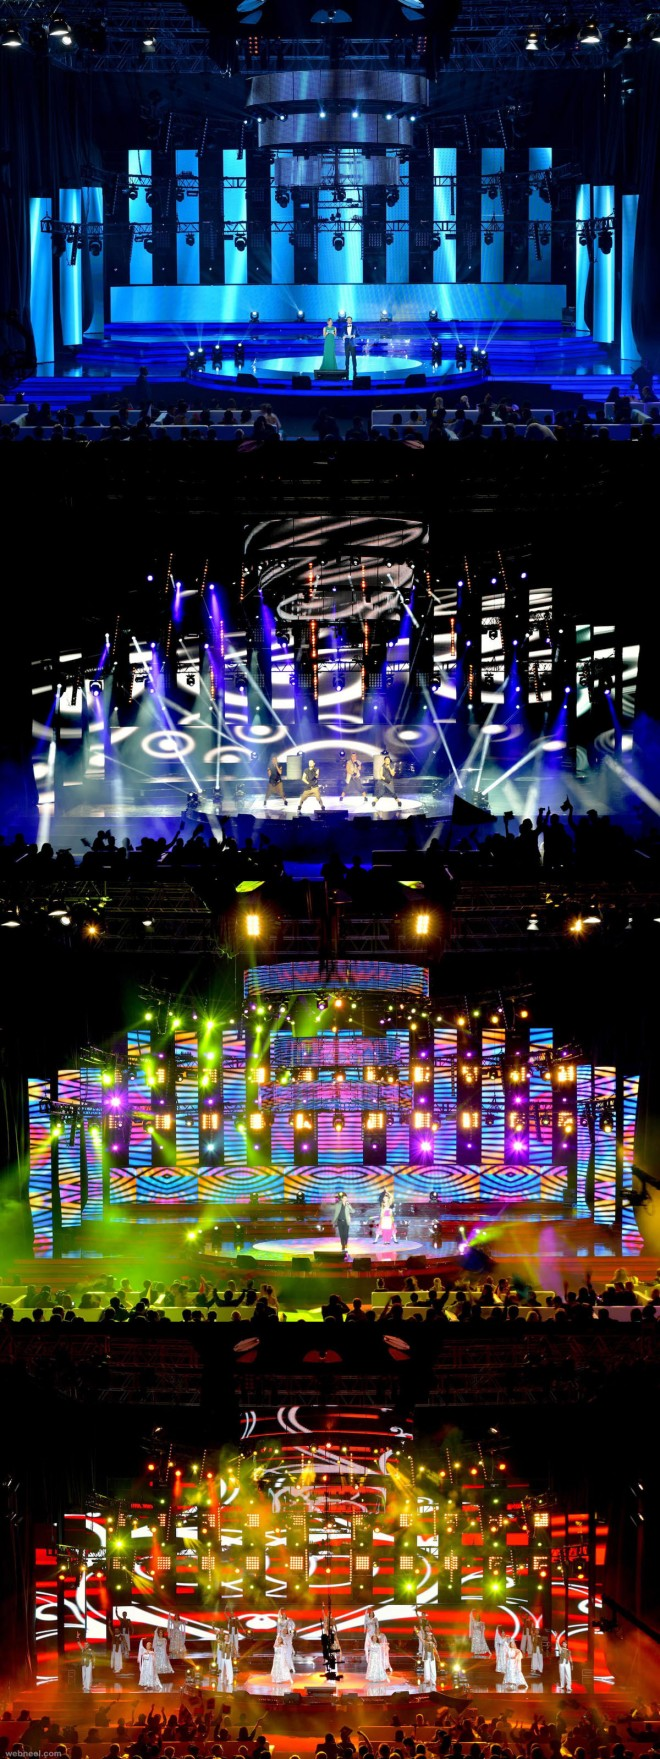 concert stage design by phantom concert stage design - Concert Stage Design Ideas